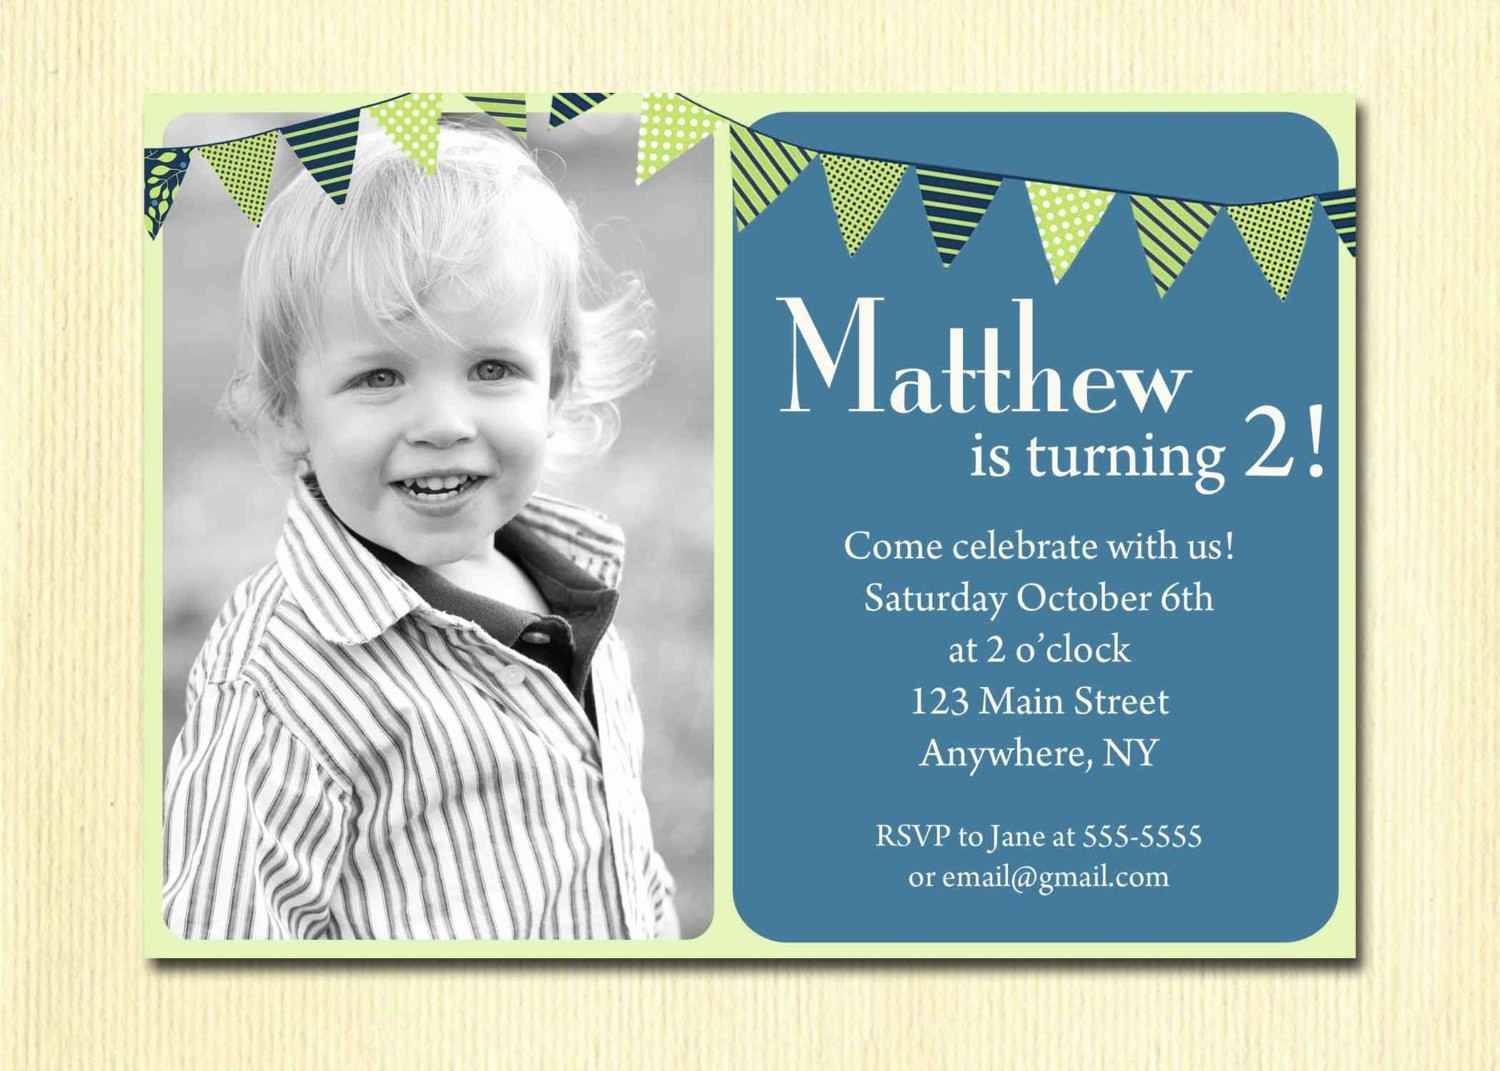 birthday invitation quotes for baby boy ; invitation-for-1st-birthday-wording-fresh-baby-boy-first-birthday-invitation-quotes-lovely-1st-birthday